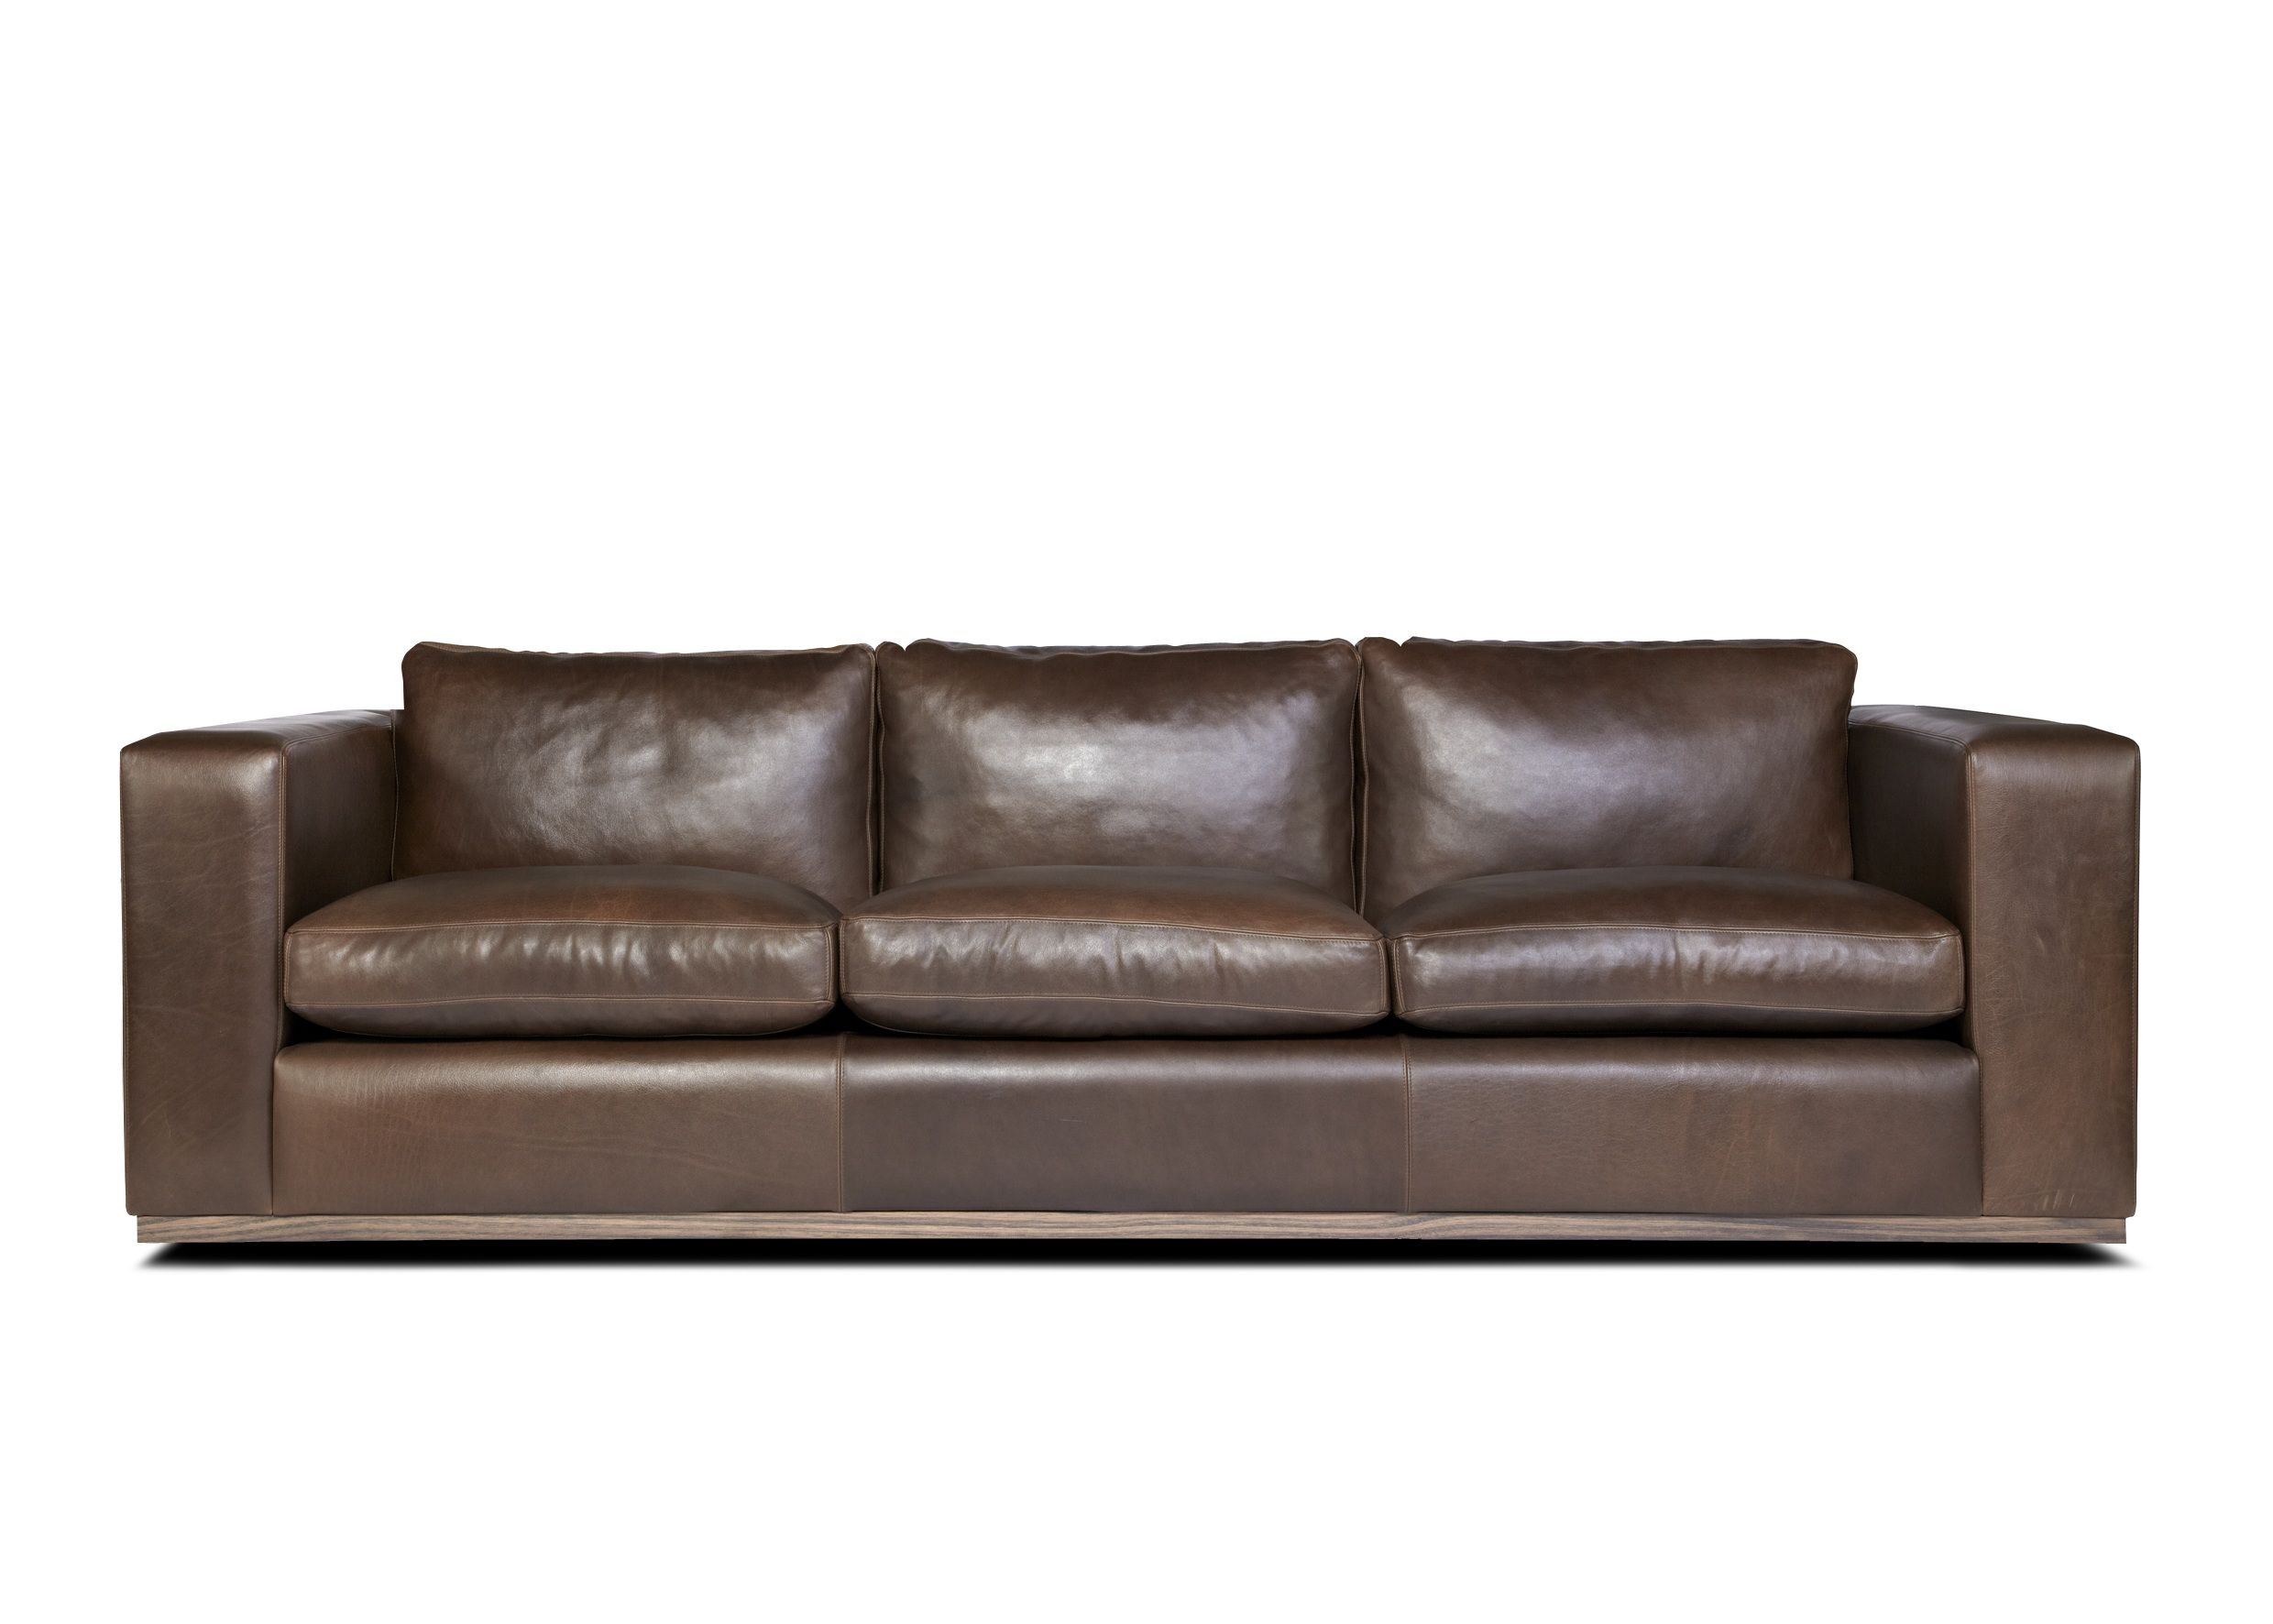 Curtis Sofa by Arthur G Navy Leather Sofa